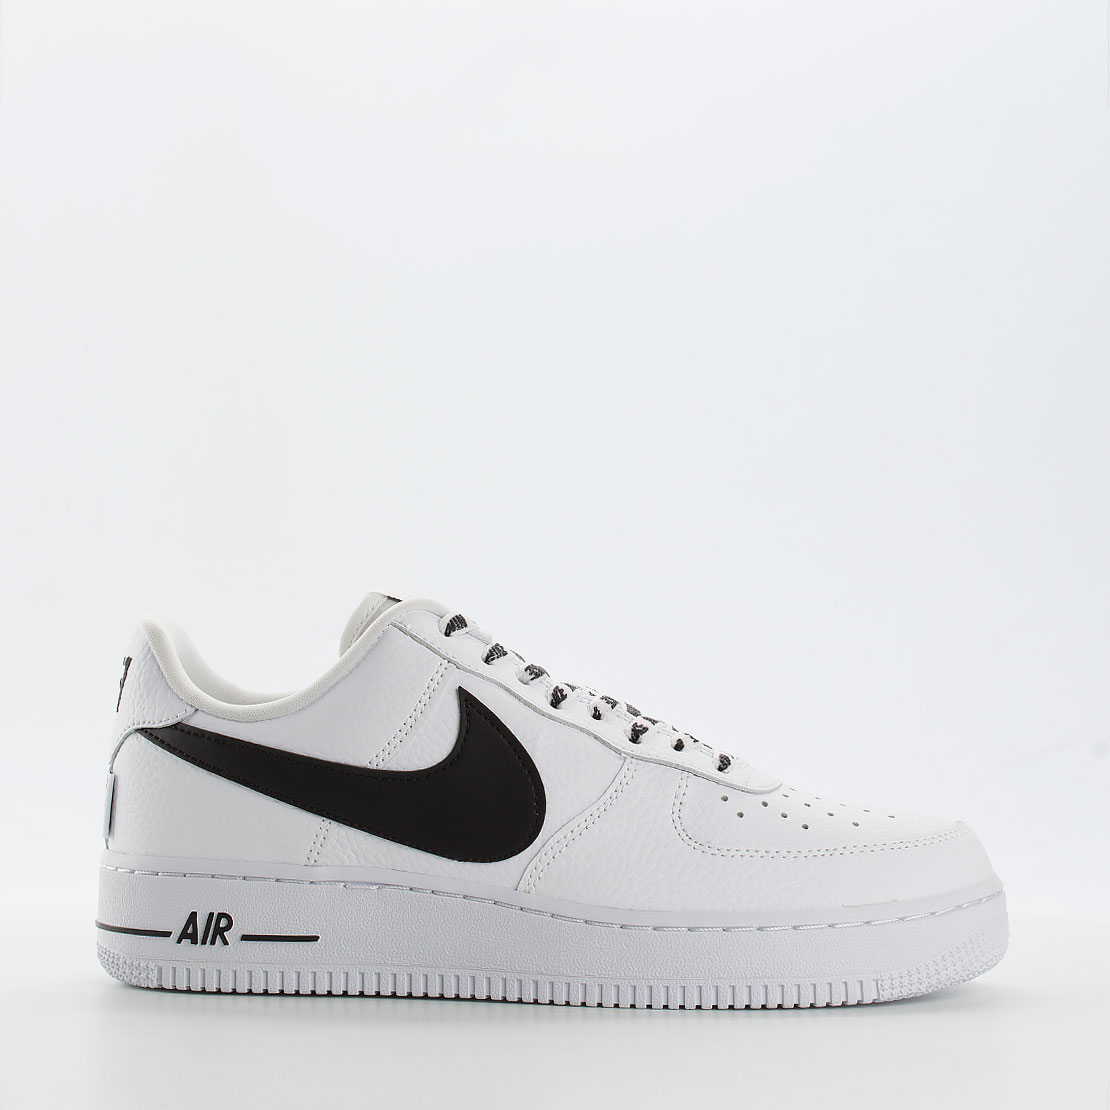 One Nike Air Lacet Force Blanche ChtsQdxrB